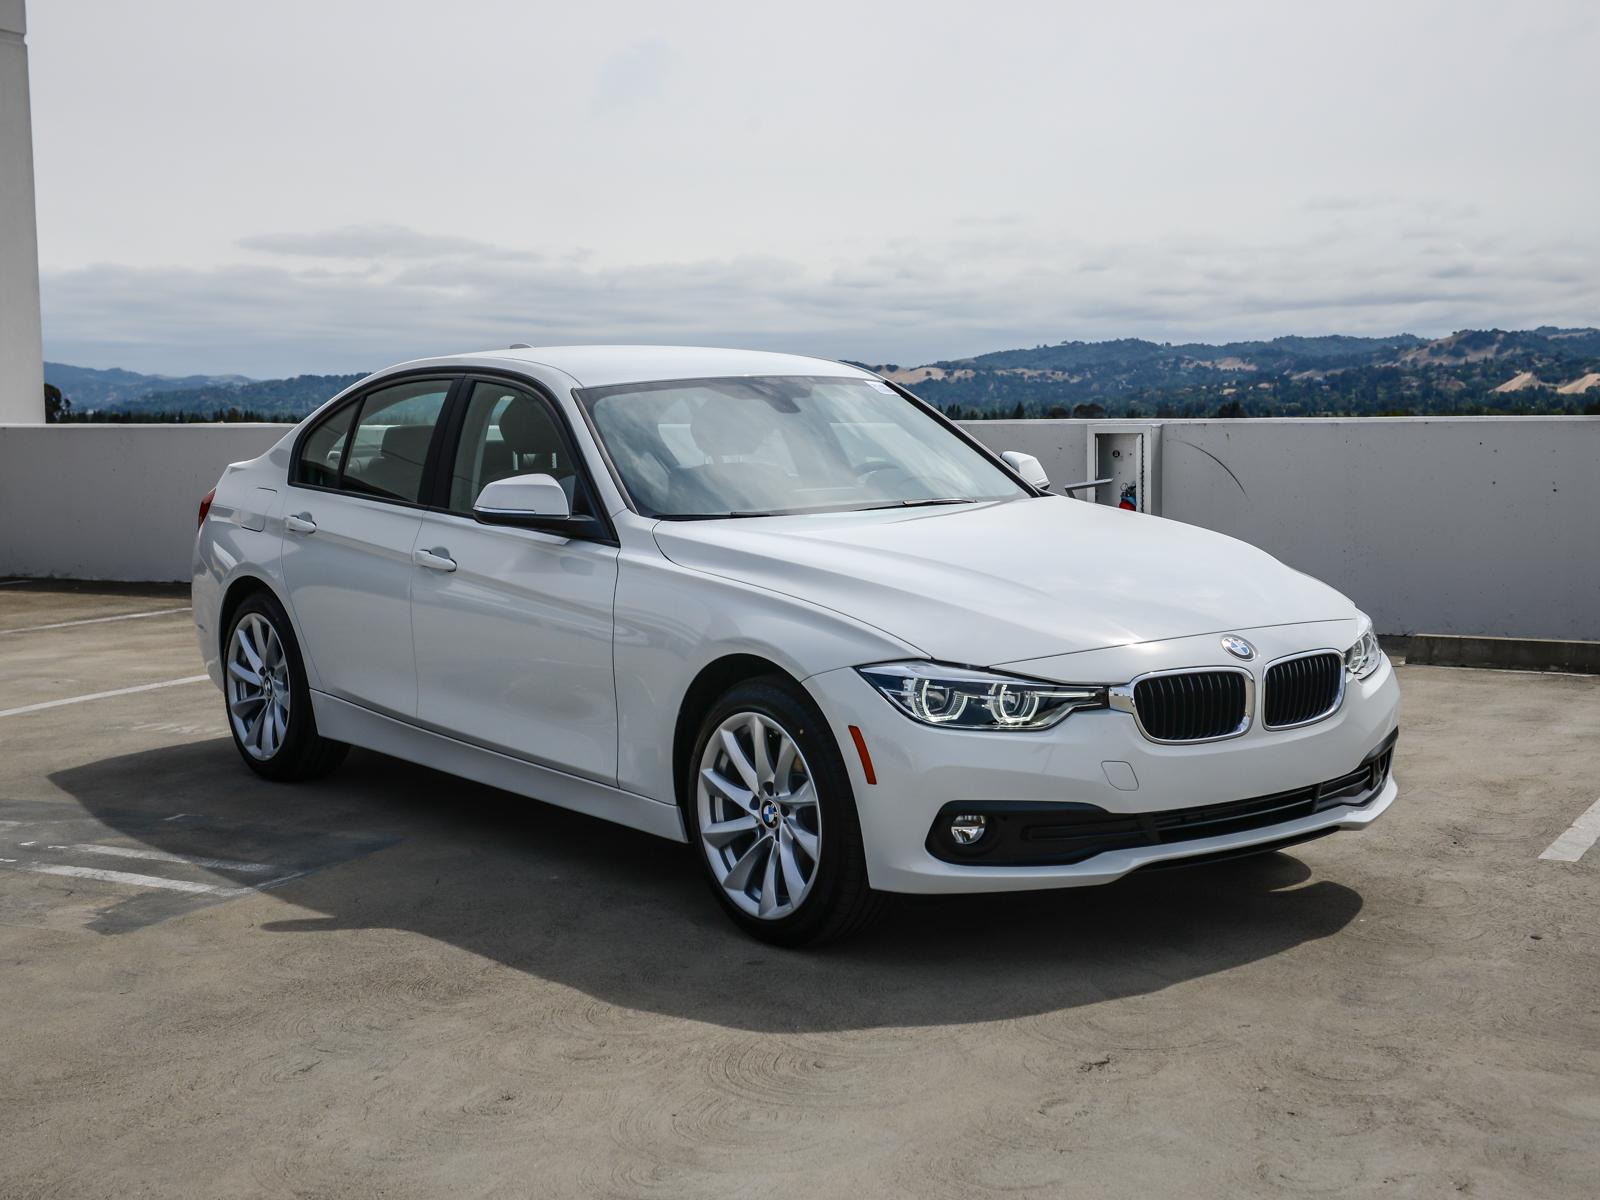 2018 bmw 3 series news of new car release. Black Bedroom Furniture Sets. Home Design Ideas